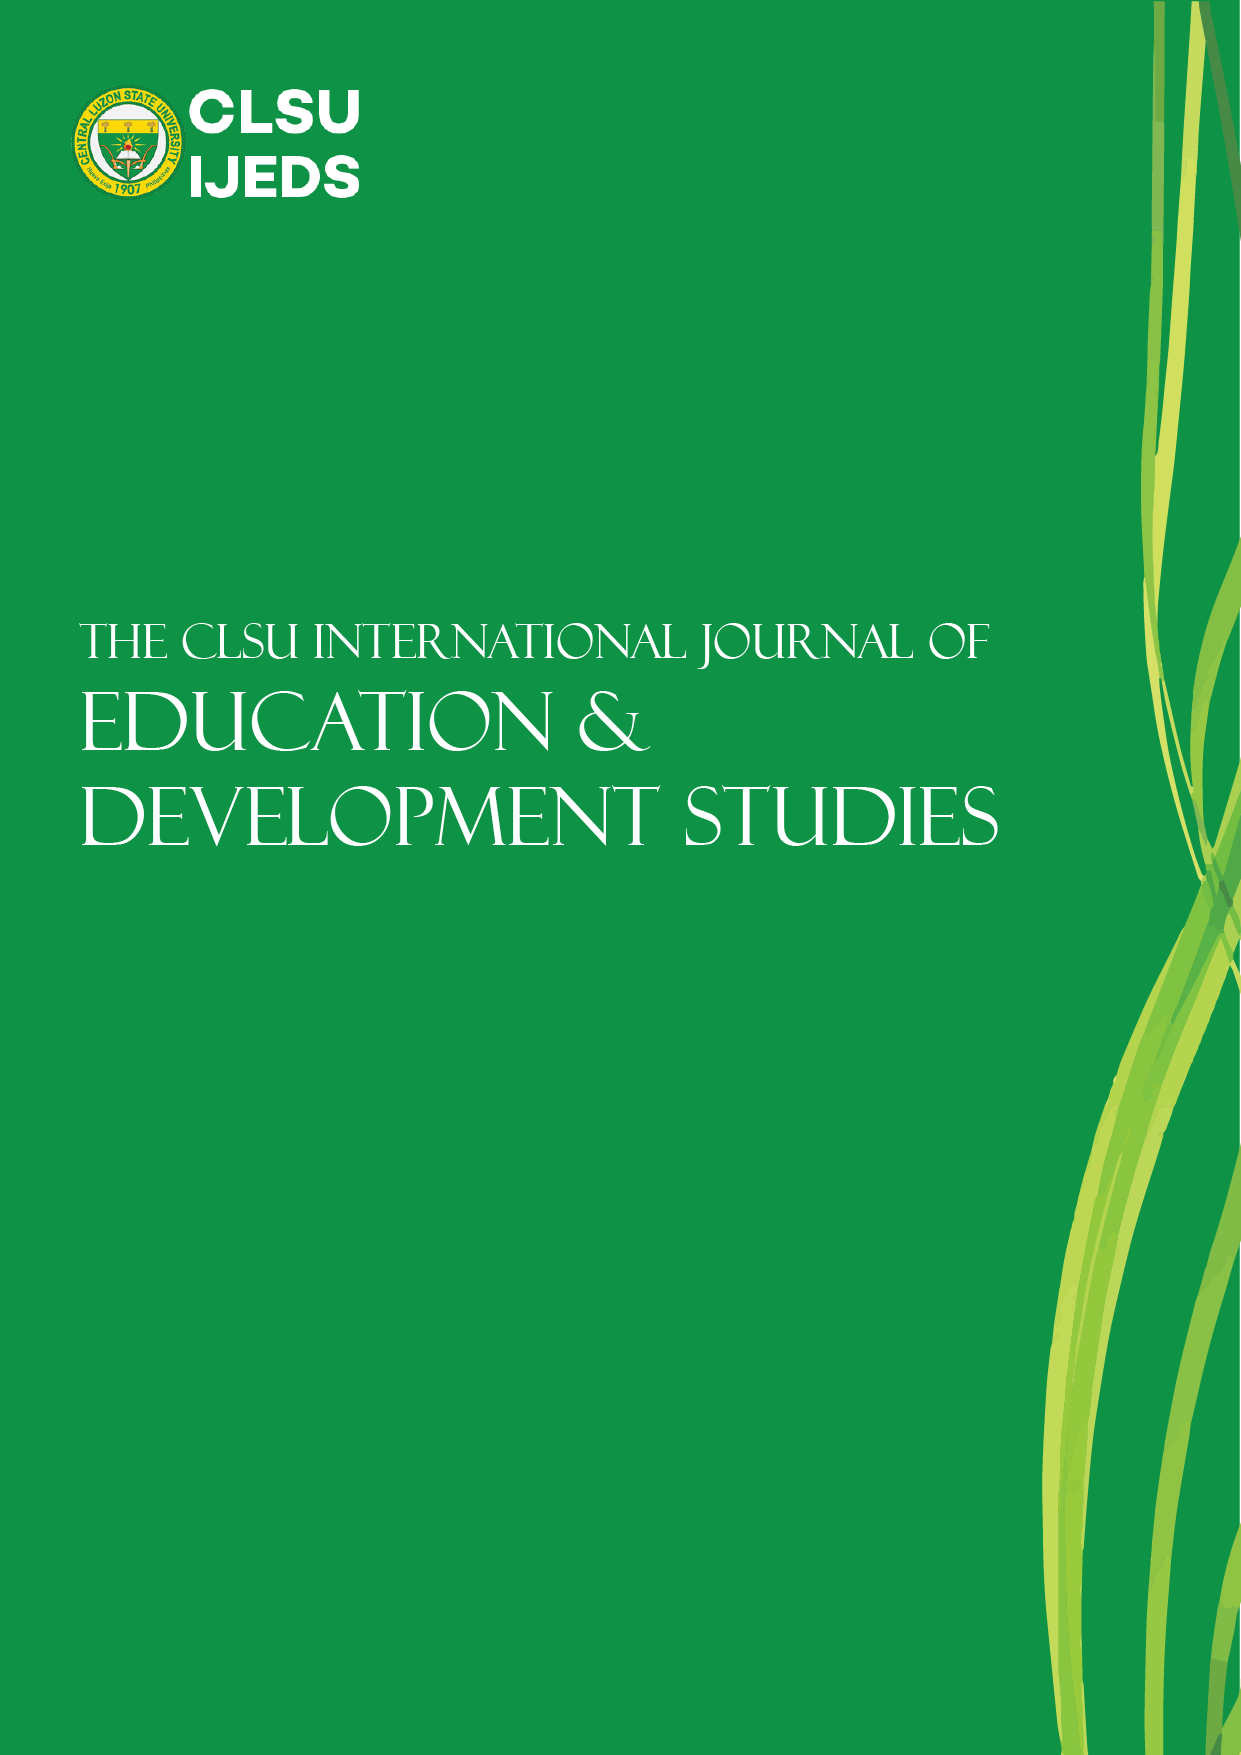 View Vol. 1 No. 1 (2020): CLSU International Journal of Education and Development Studies